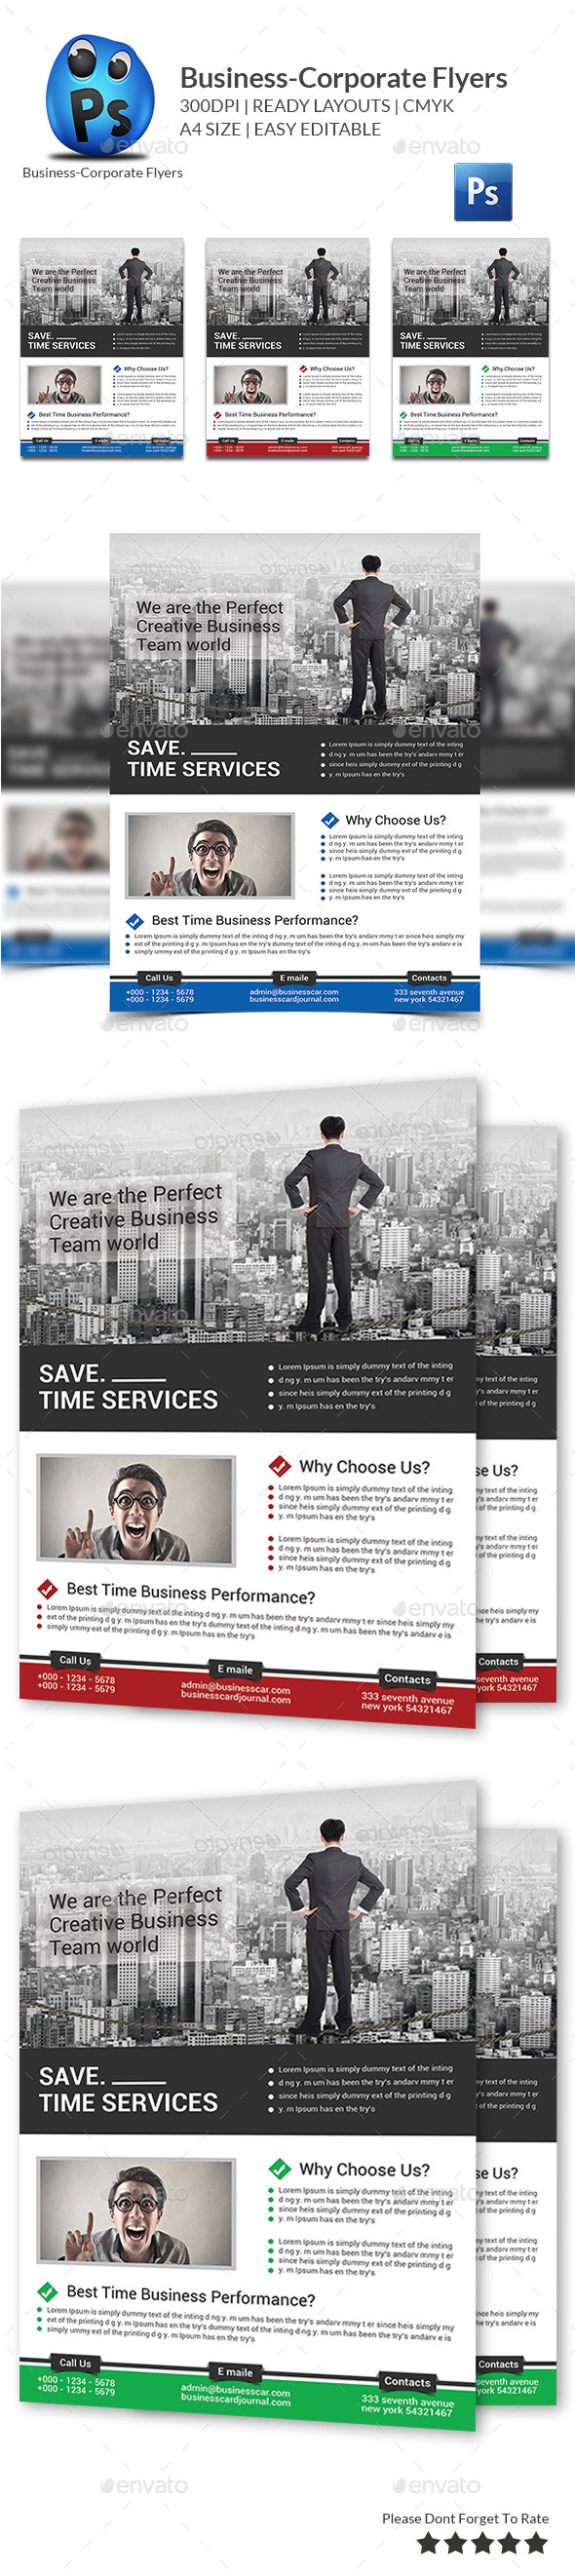 Business Flyers Templates - Corporate Flyers